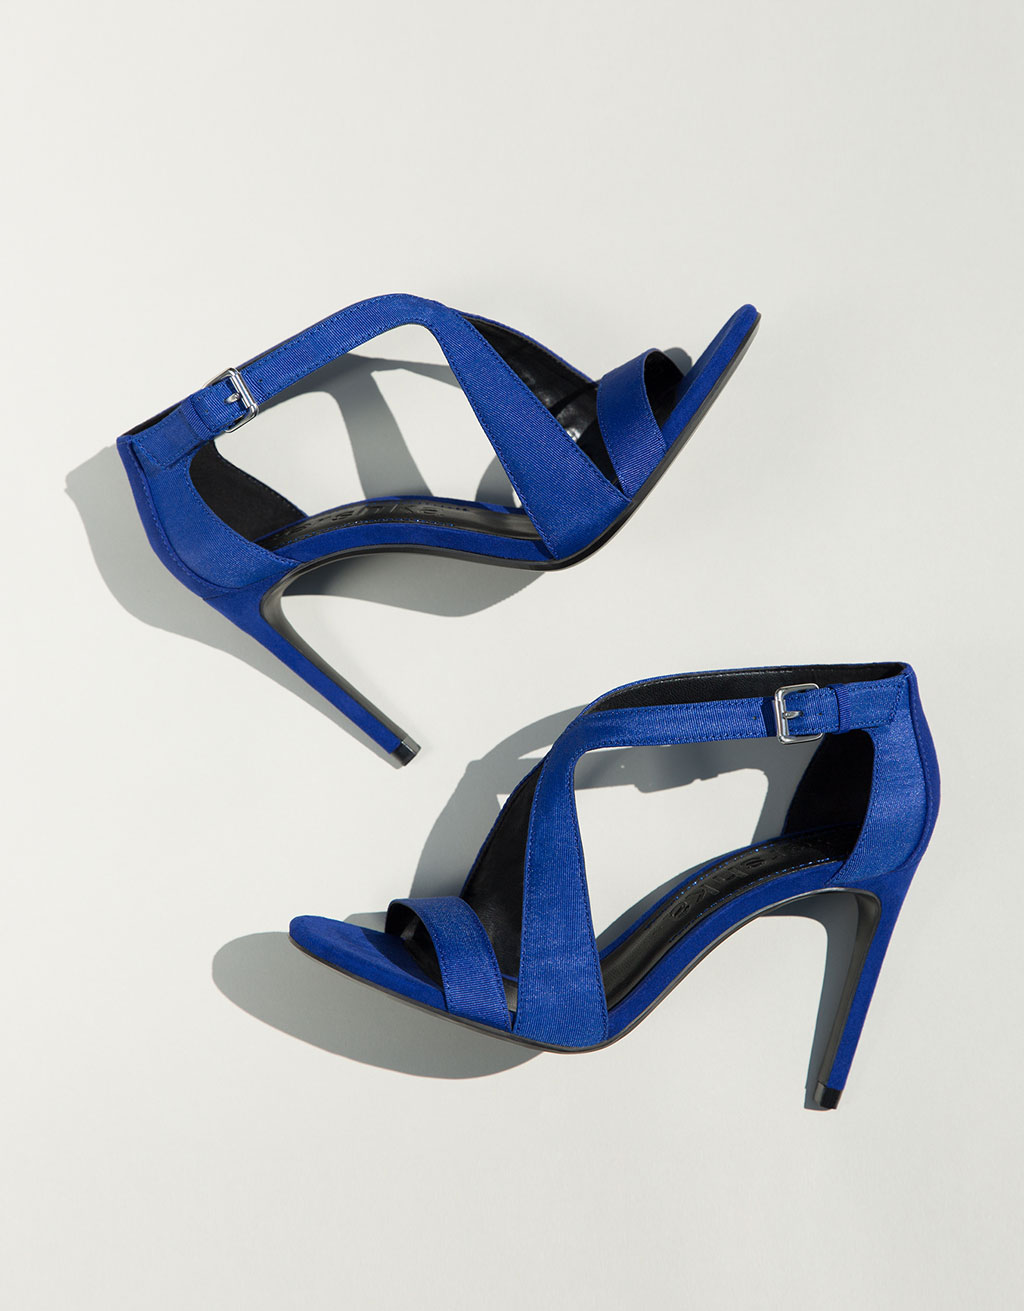 High-heeled crossover sandals